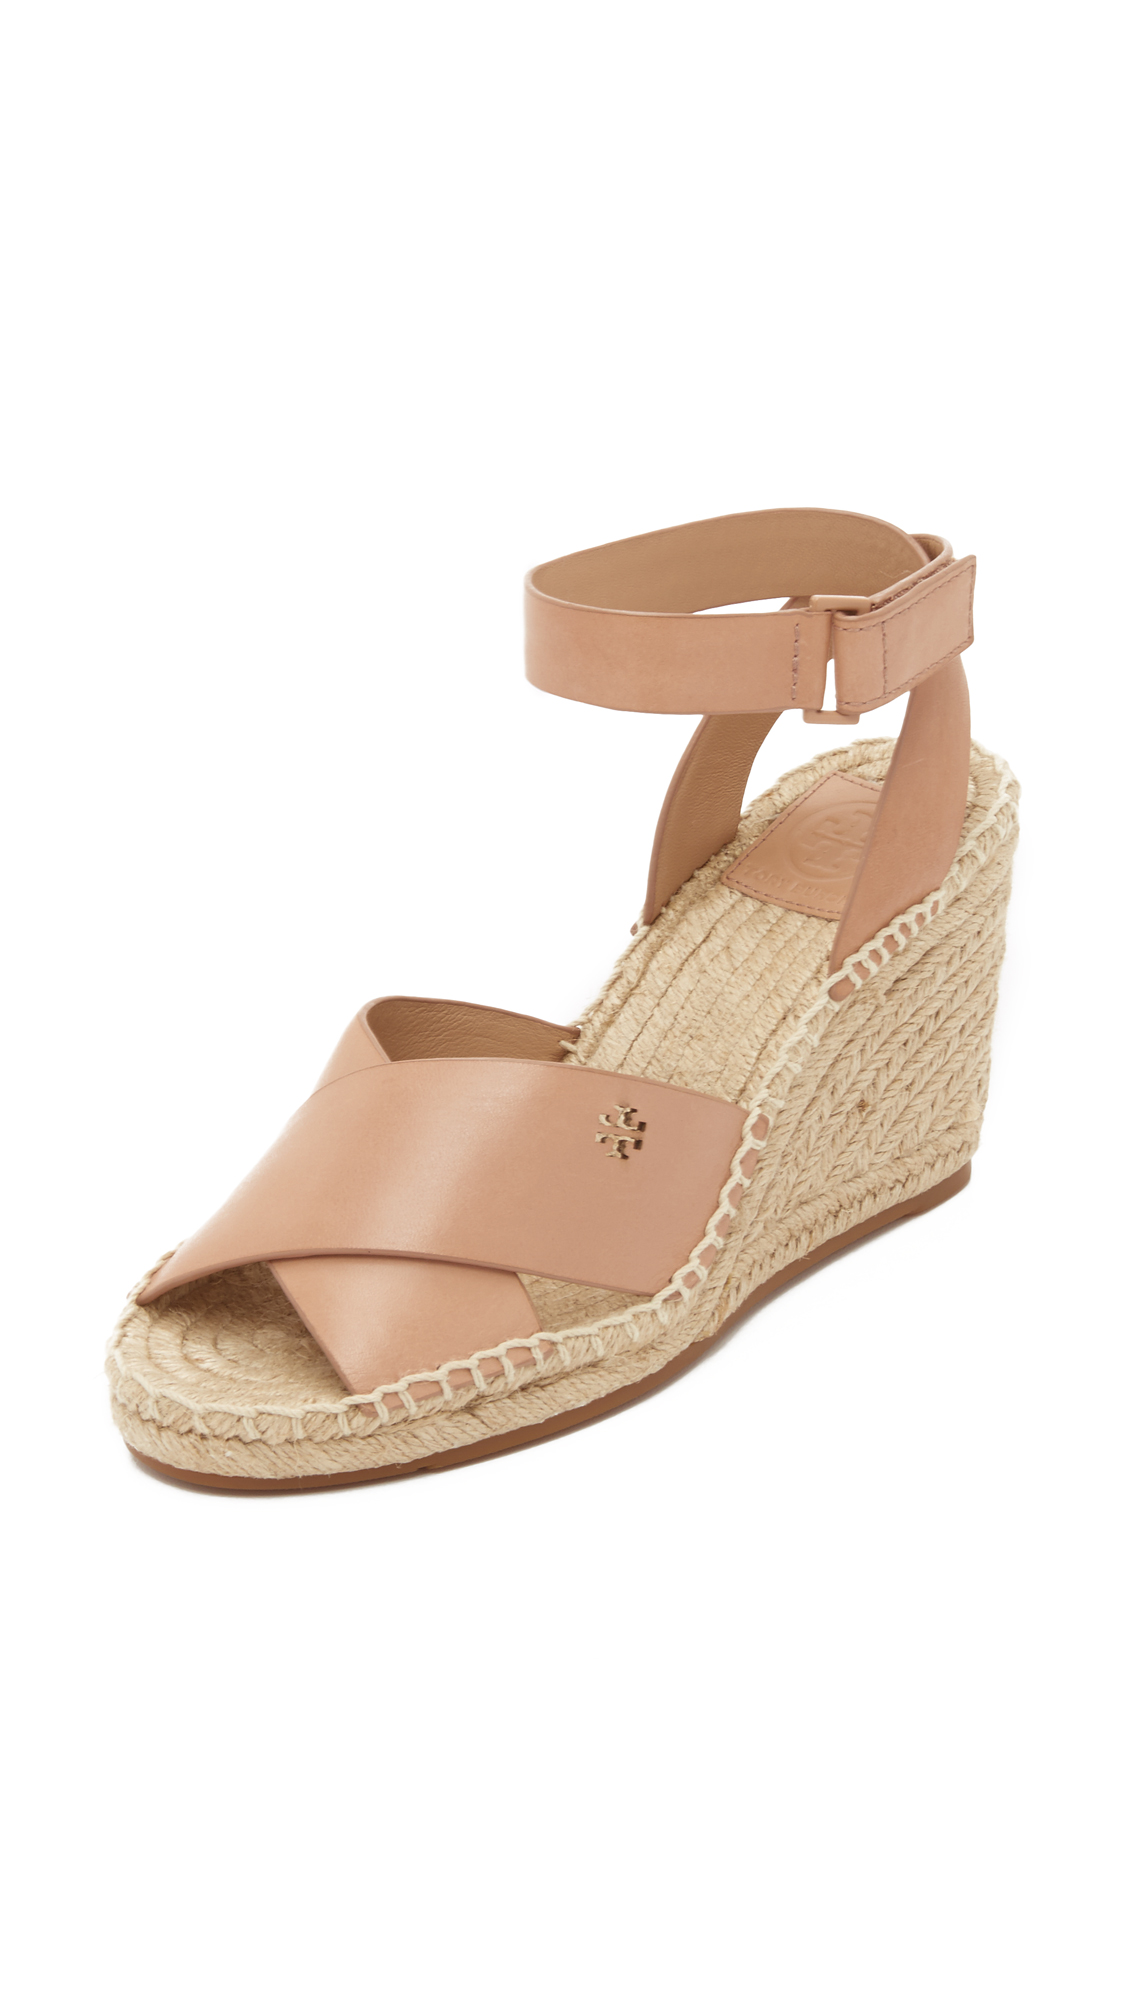 3ee36da1383 Tory Burch Bima Wedge Espadrille Sandals